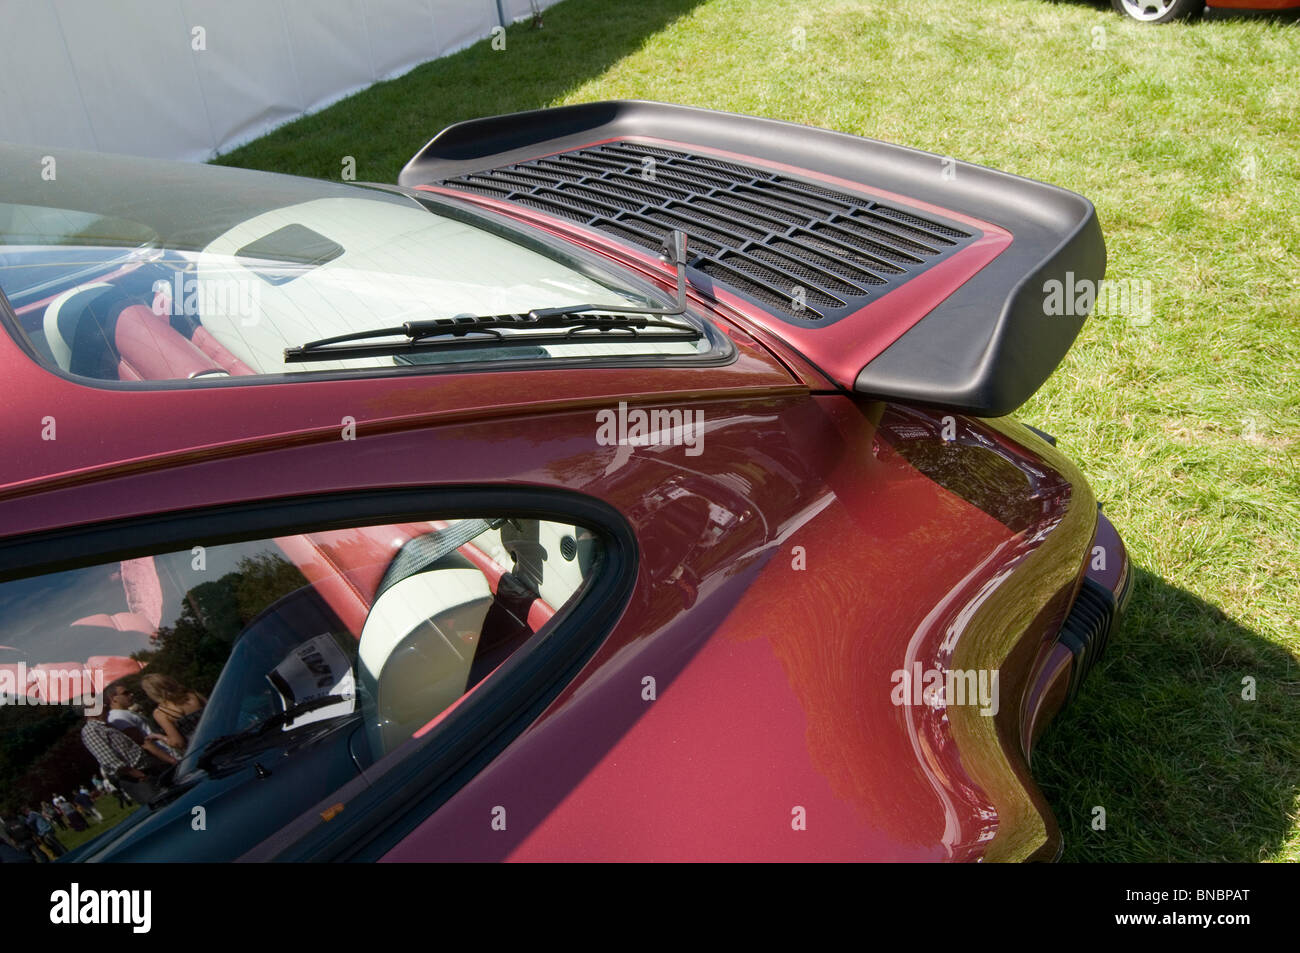 Porsche Roadster Whaletail Whale Tail Spoiler 911 80 S Eighthes Stock Photo Royalty Free Image